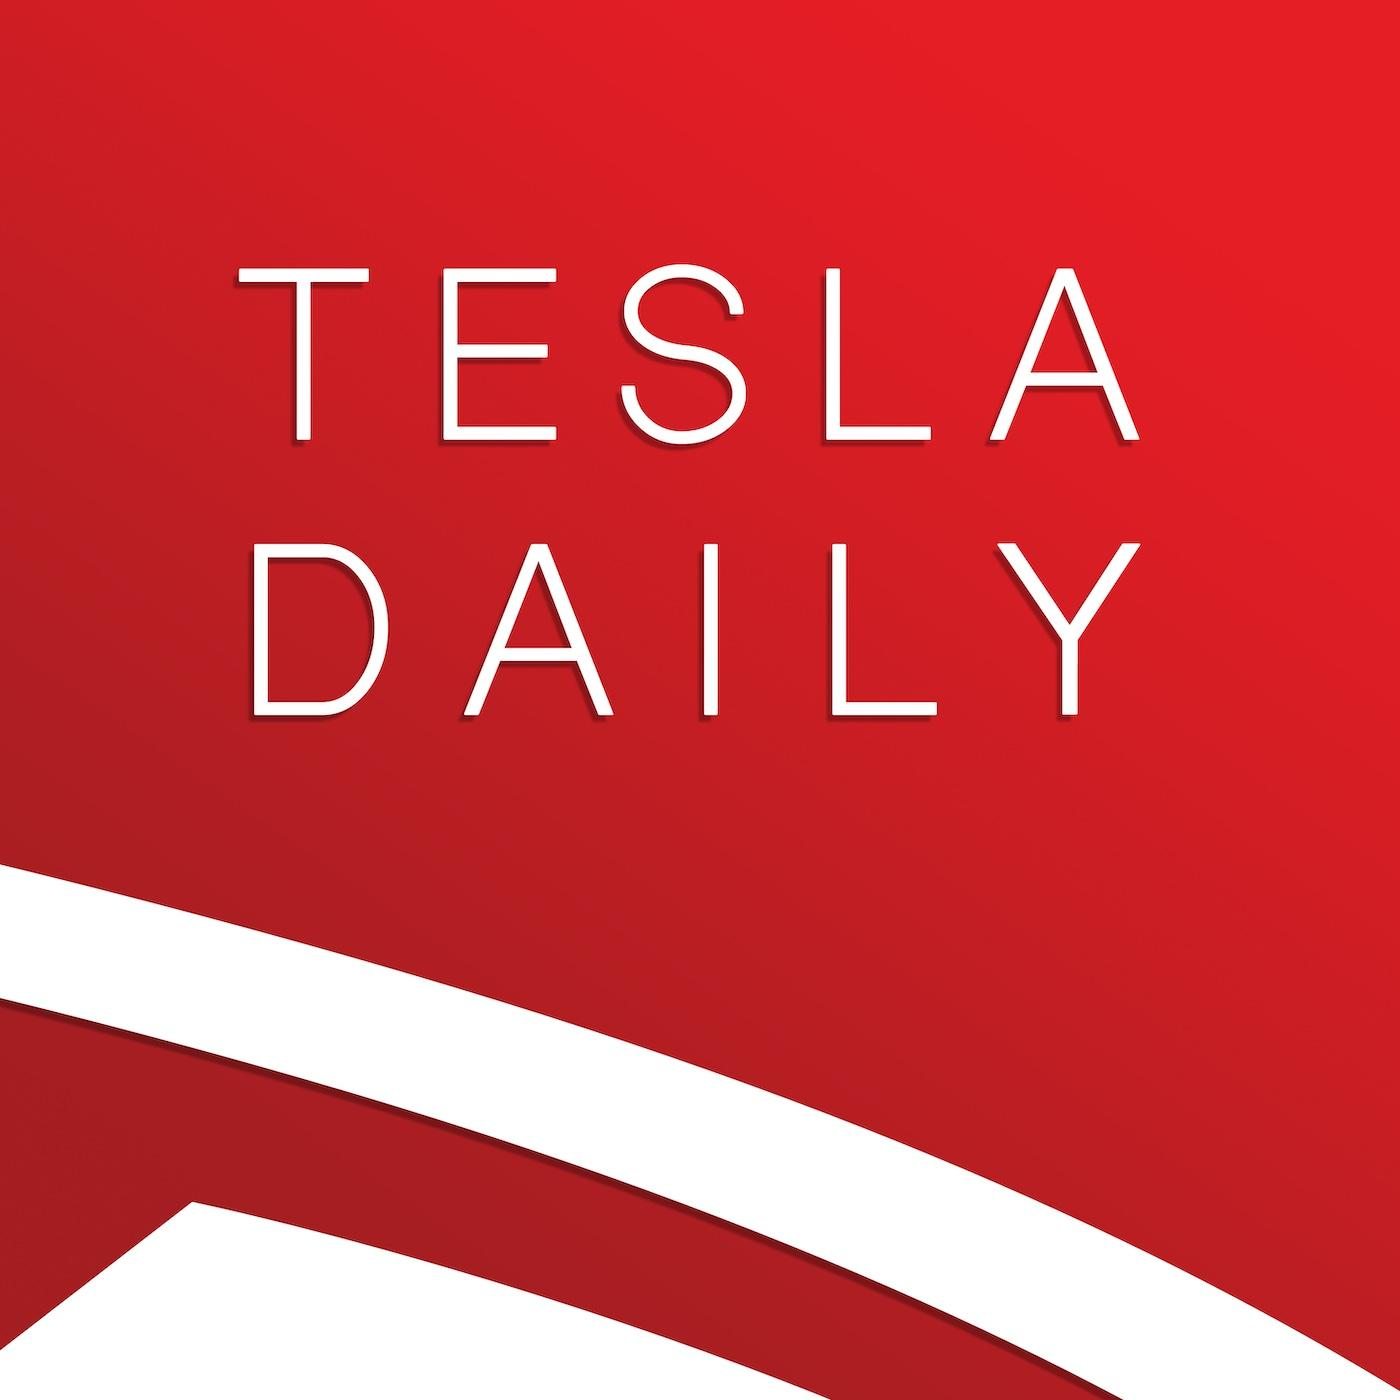 Institutions Adjust Stake in TSLA + Tesla India, Cryptocurrency, EV Market, SpaceX Valuation (02.16.21)